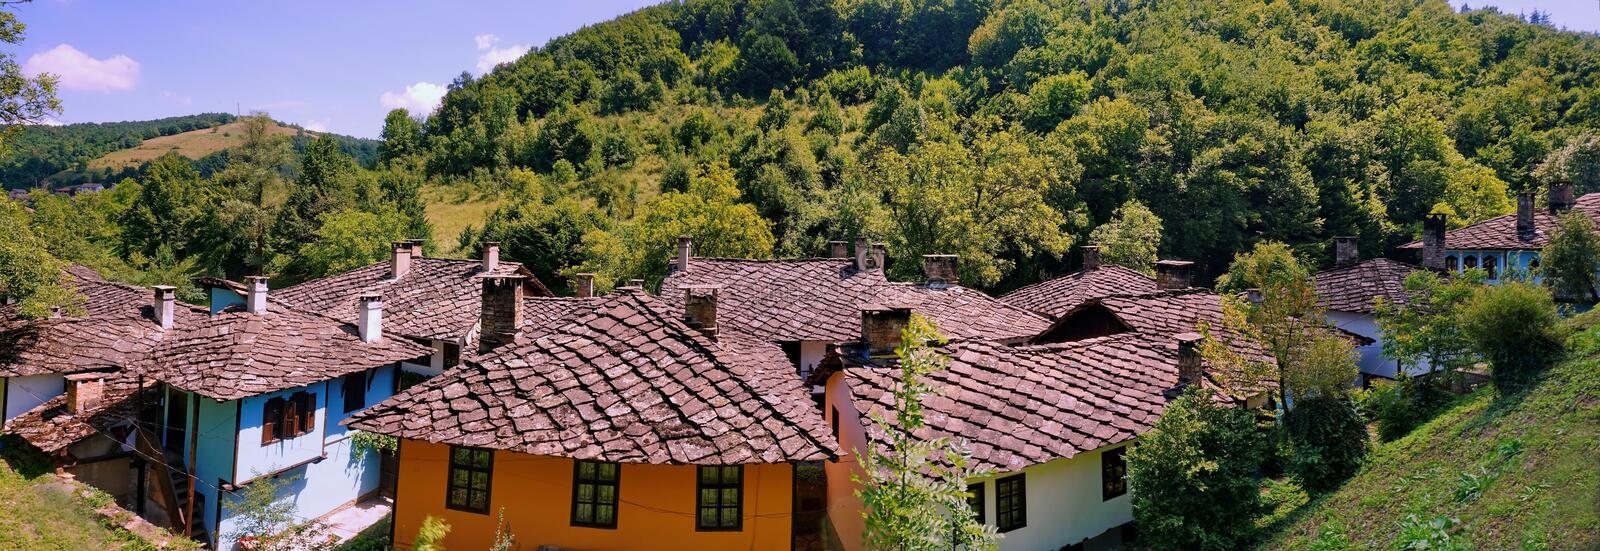 Traditional authentic houses with stone roofs in the Etar Architectural-Ethnographic Complex royalty free stock images